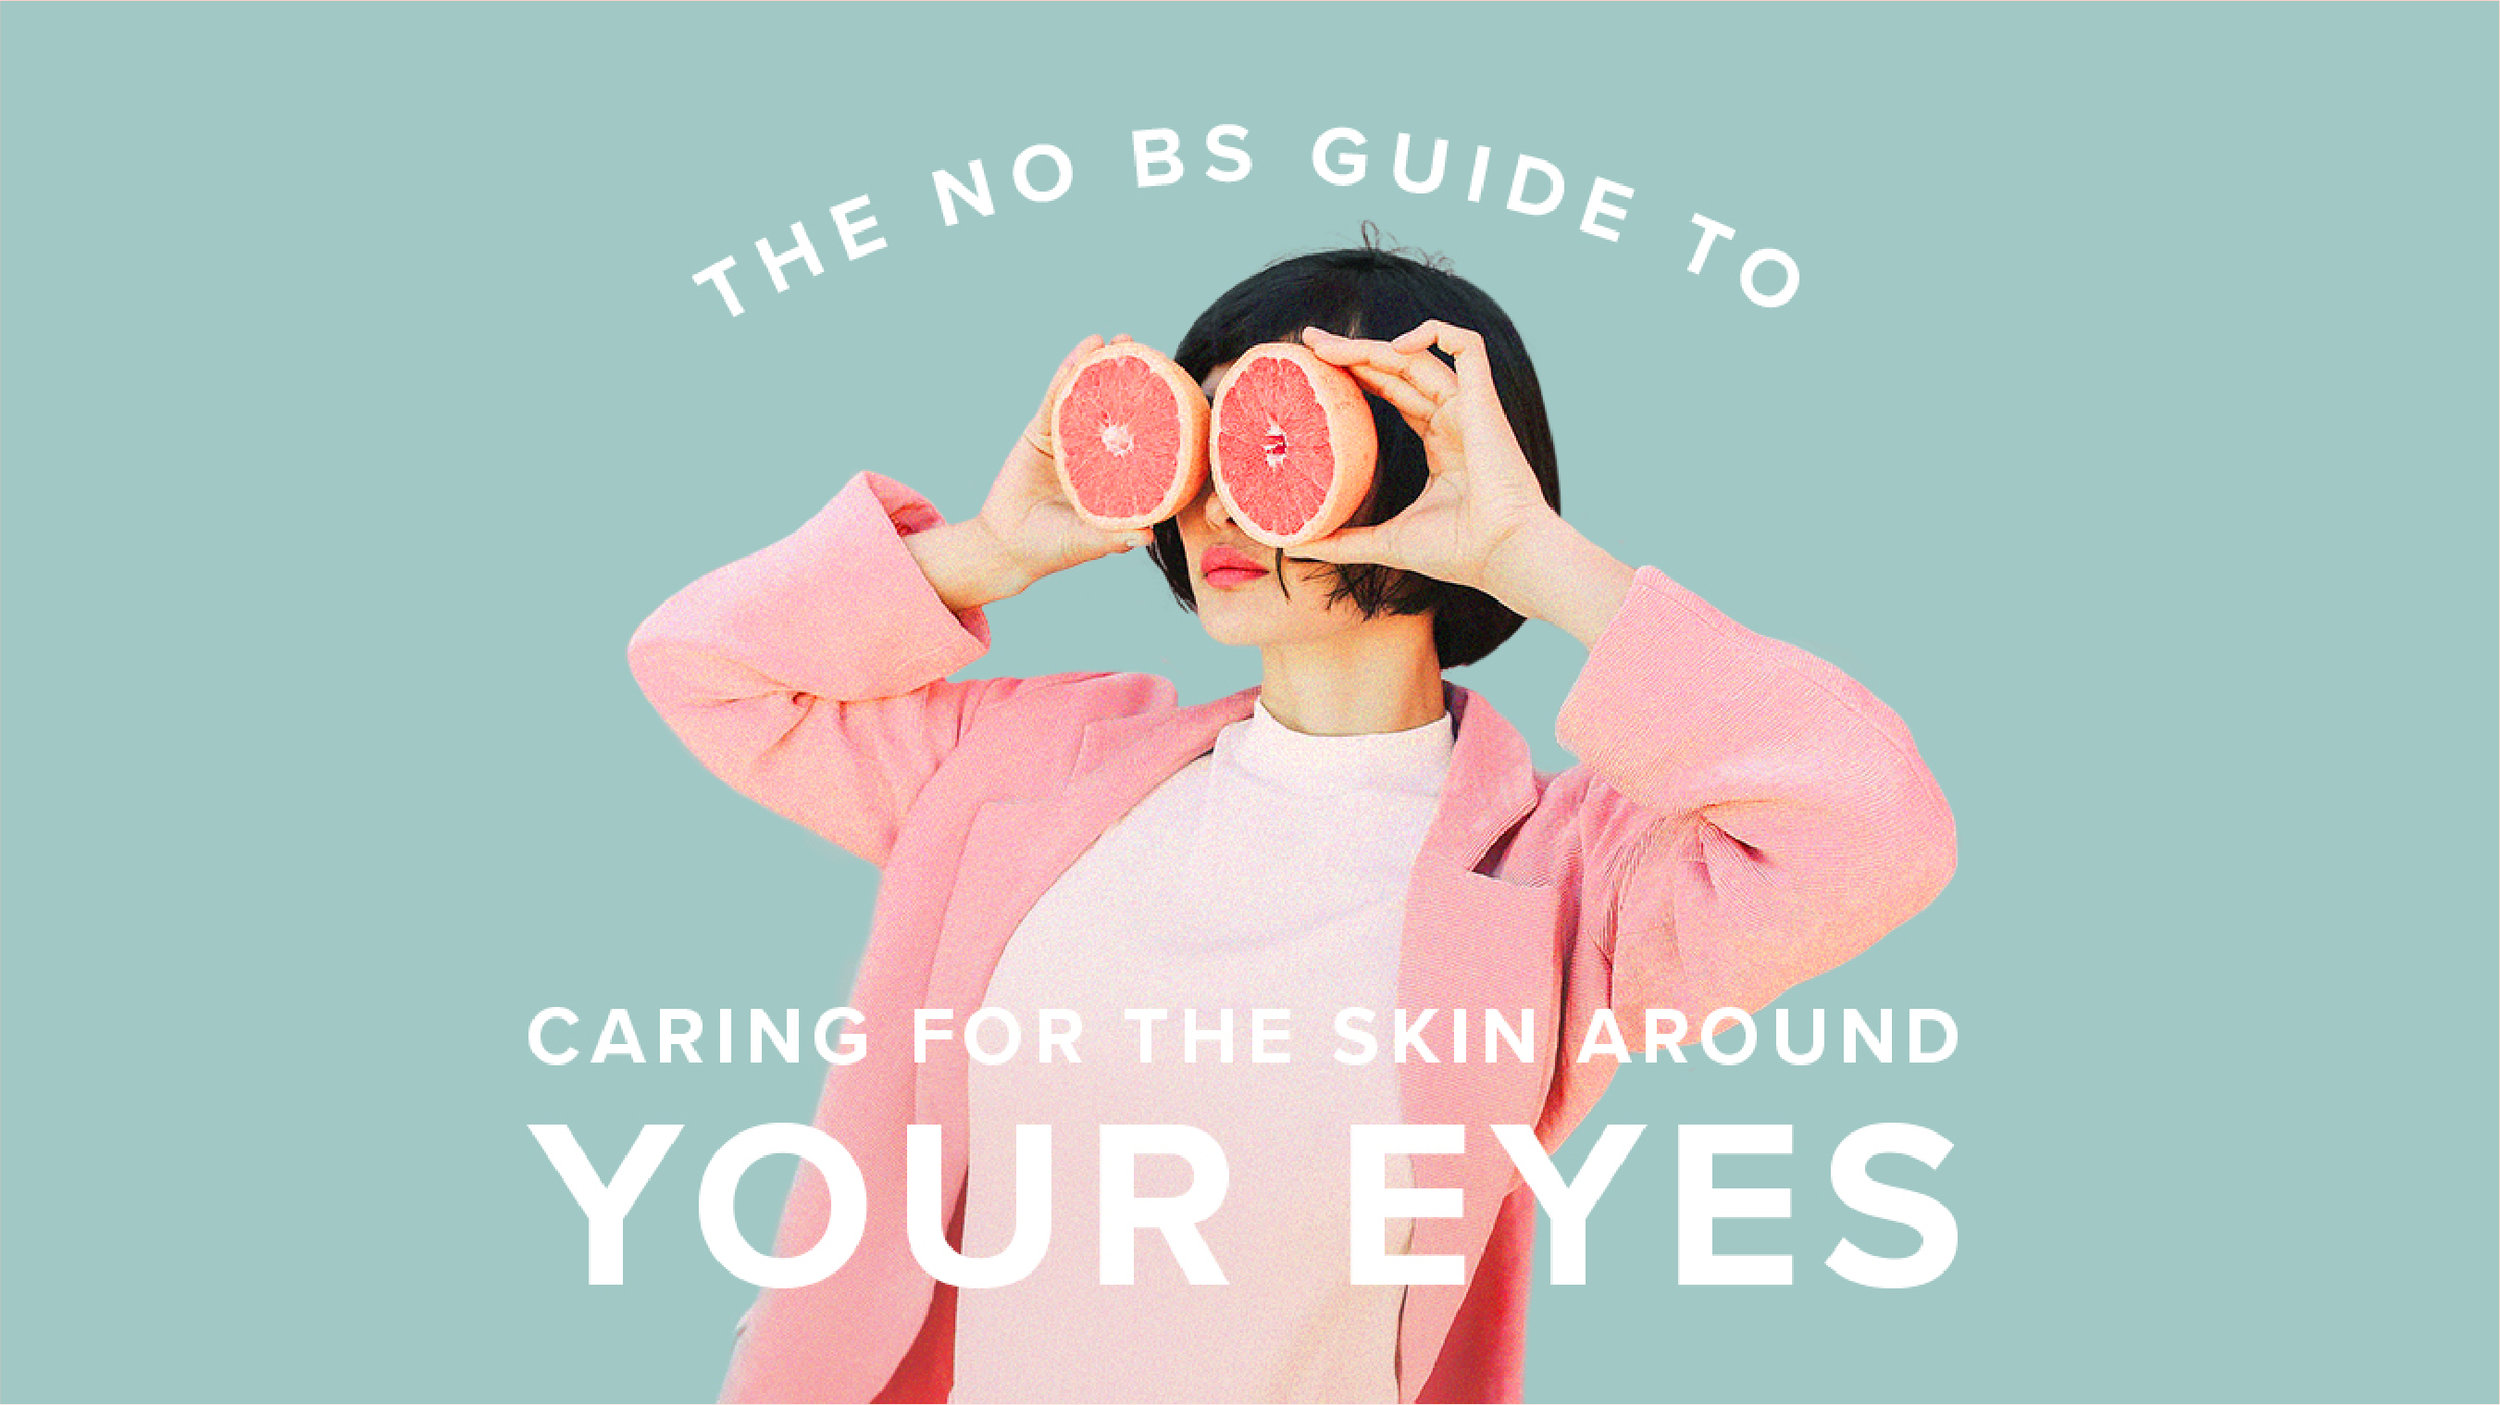 11463-The_No_BS_Guide_to_Caring_for_the_Skin_Around_Your_Eyes-1296x728-body1.jpg